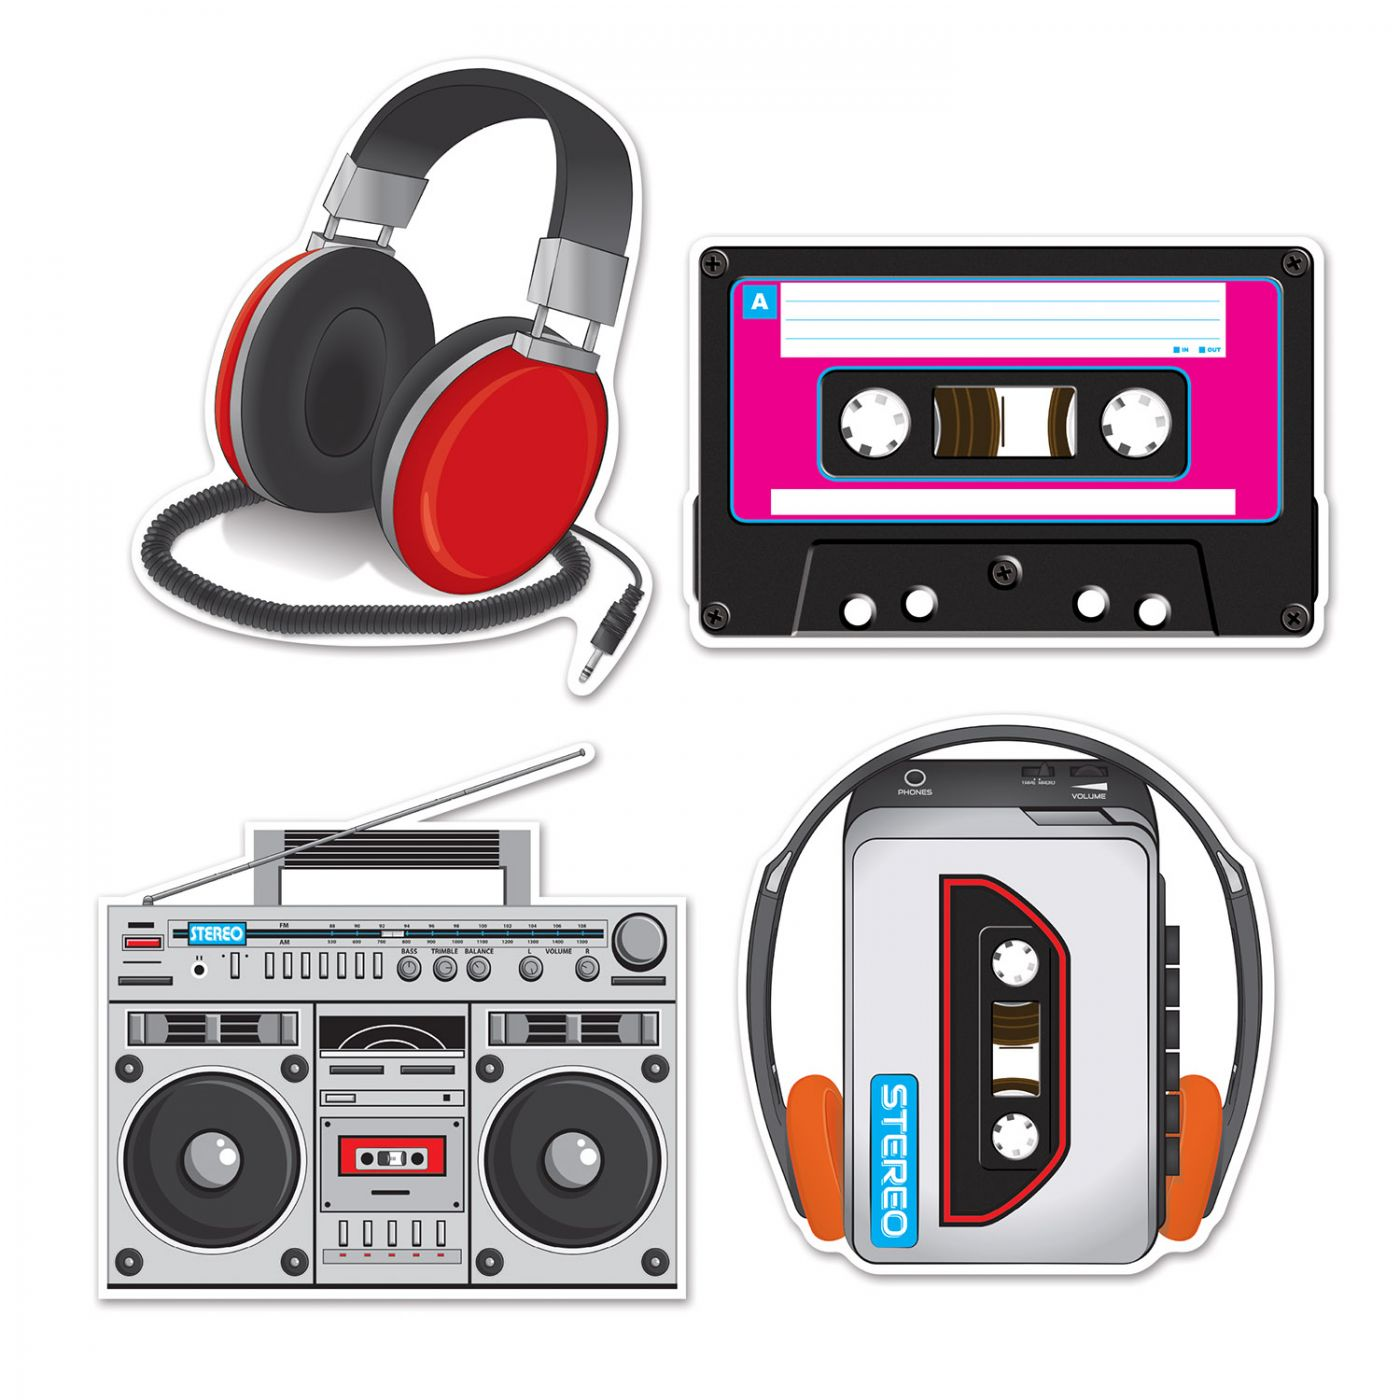 Cassette Player Cutouts image